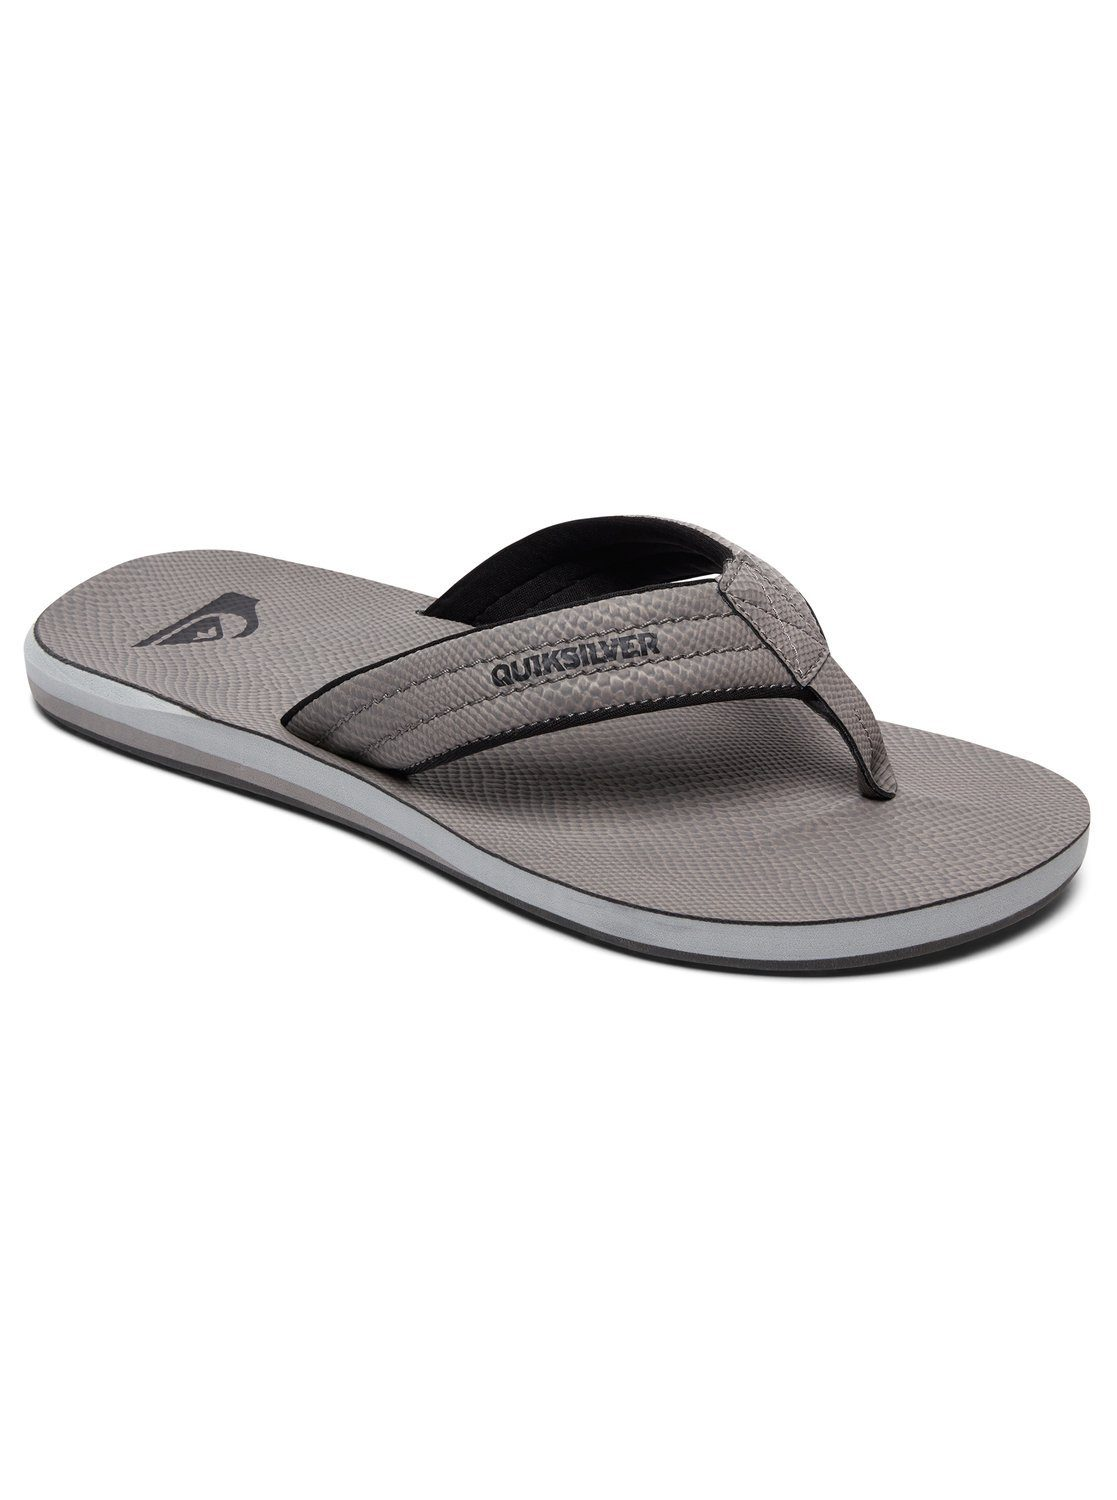 Quiksilver Sandalen Carver Nubuck online kaufen  Grey#ft5_slash#grey#ft5_slash#grey